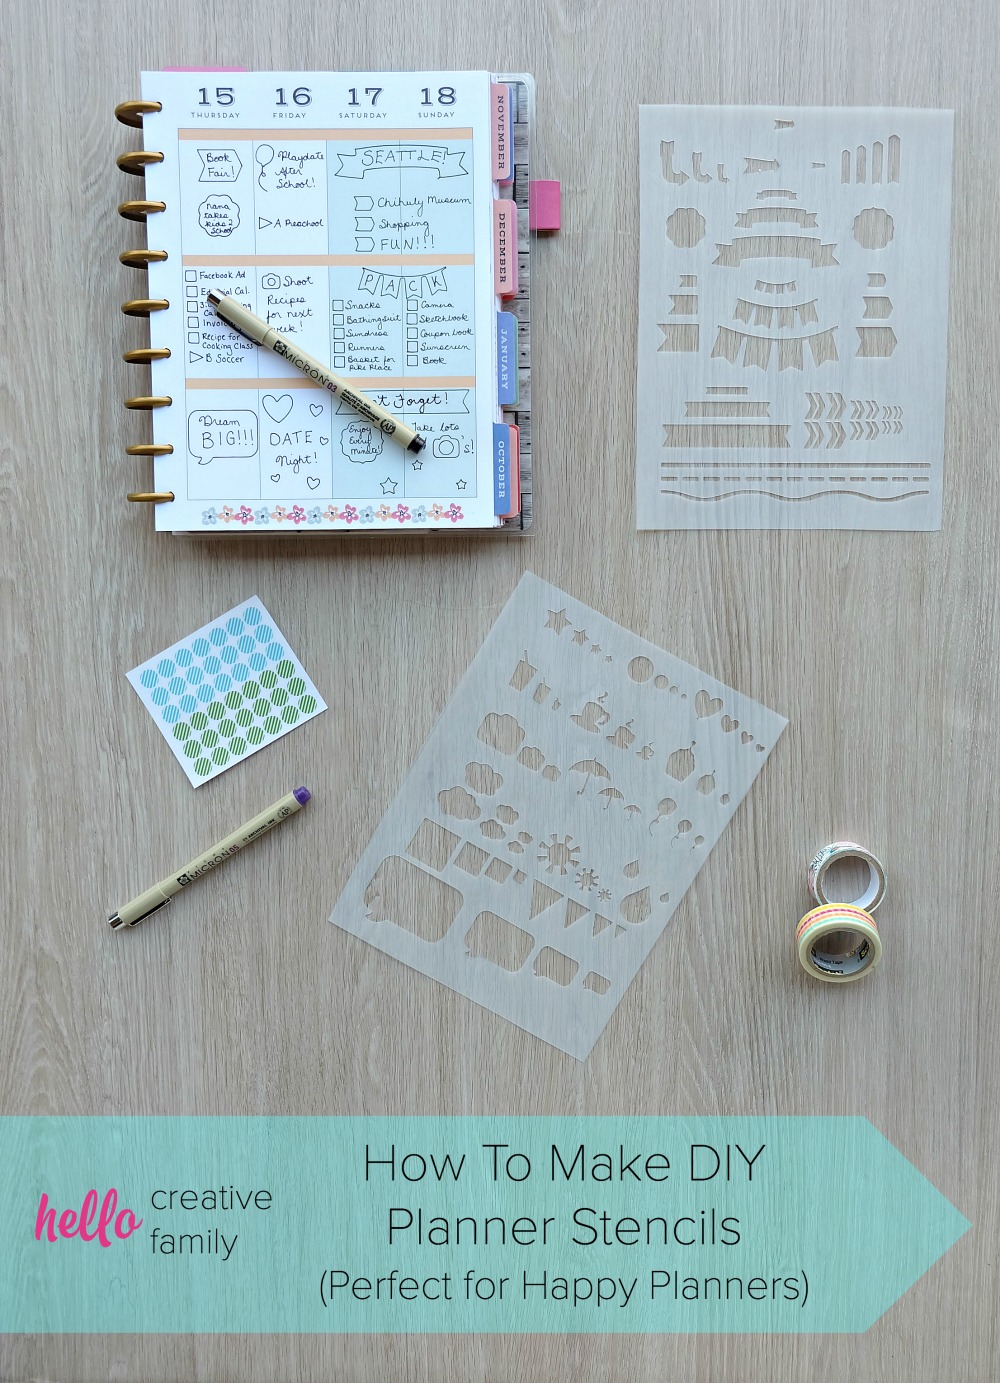 How to make diy planner folder pockets perfect for happy planners how to make diy planner stencils using your cricut perfect for happy planners solutioingenieria Choice Image